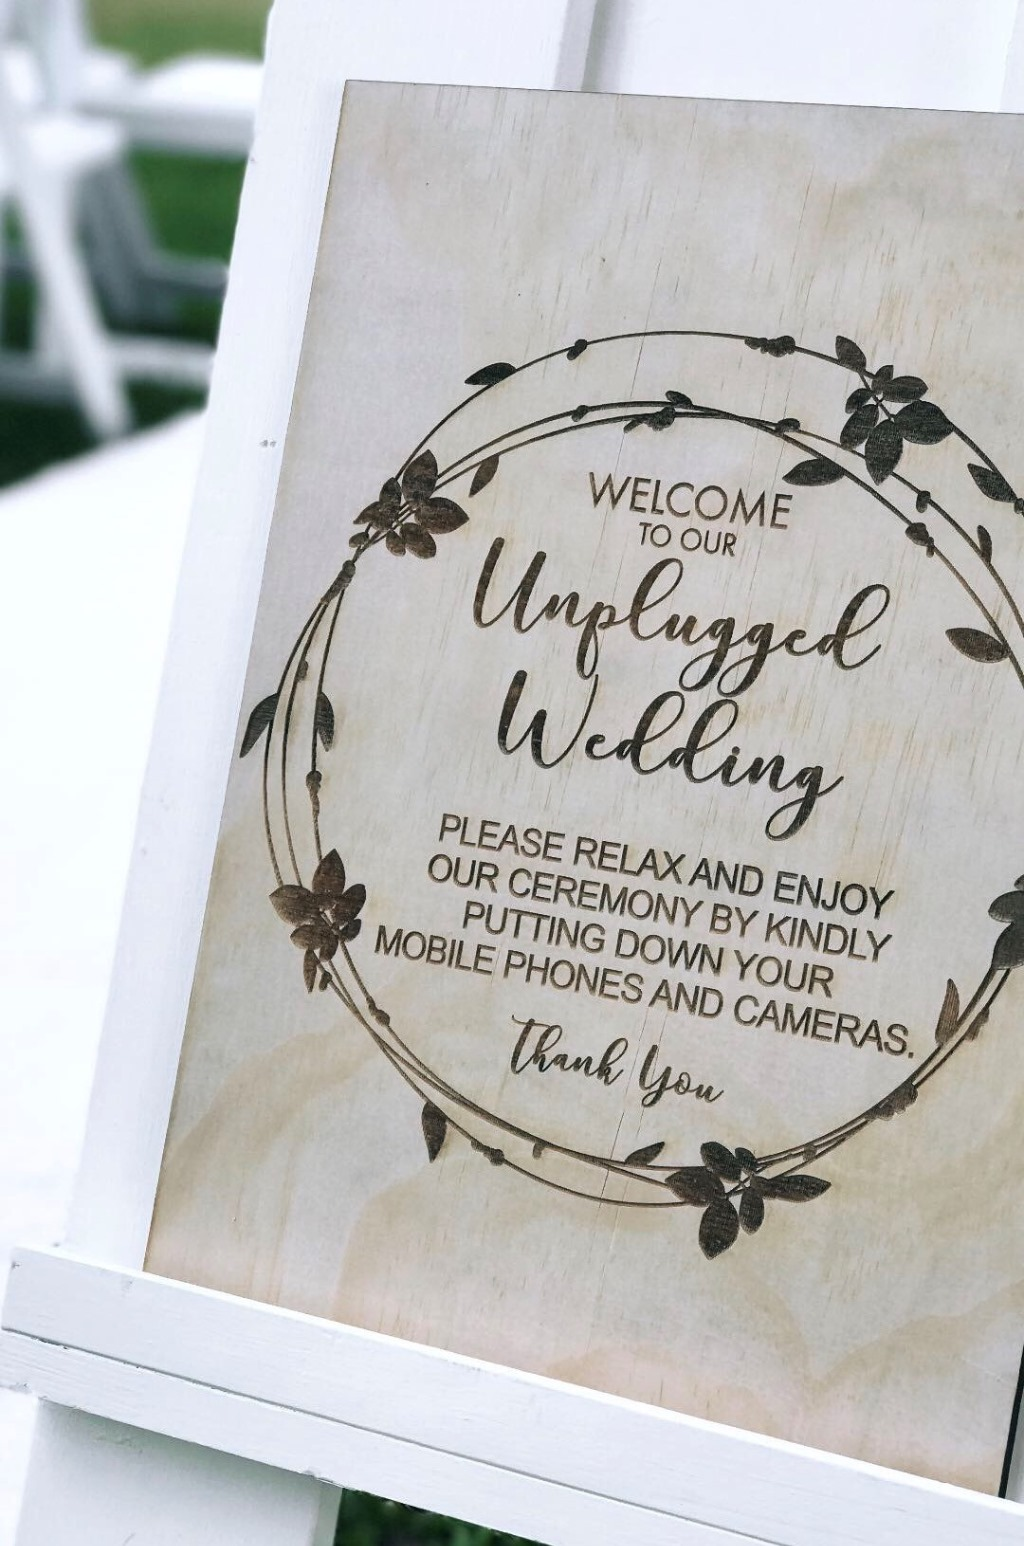 https://www.brisbaneweddingdecorators.com.au/ Unplugged wedding sign